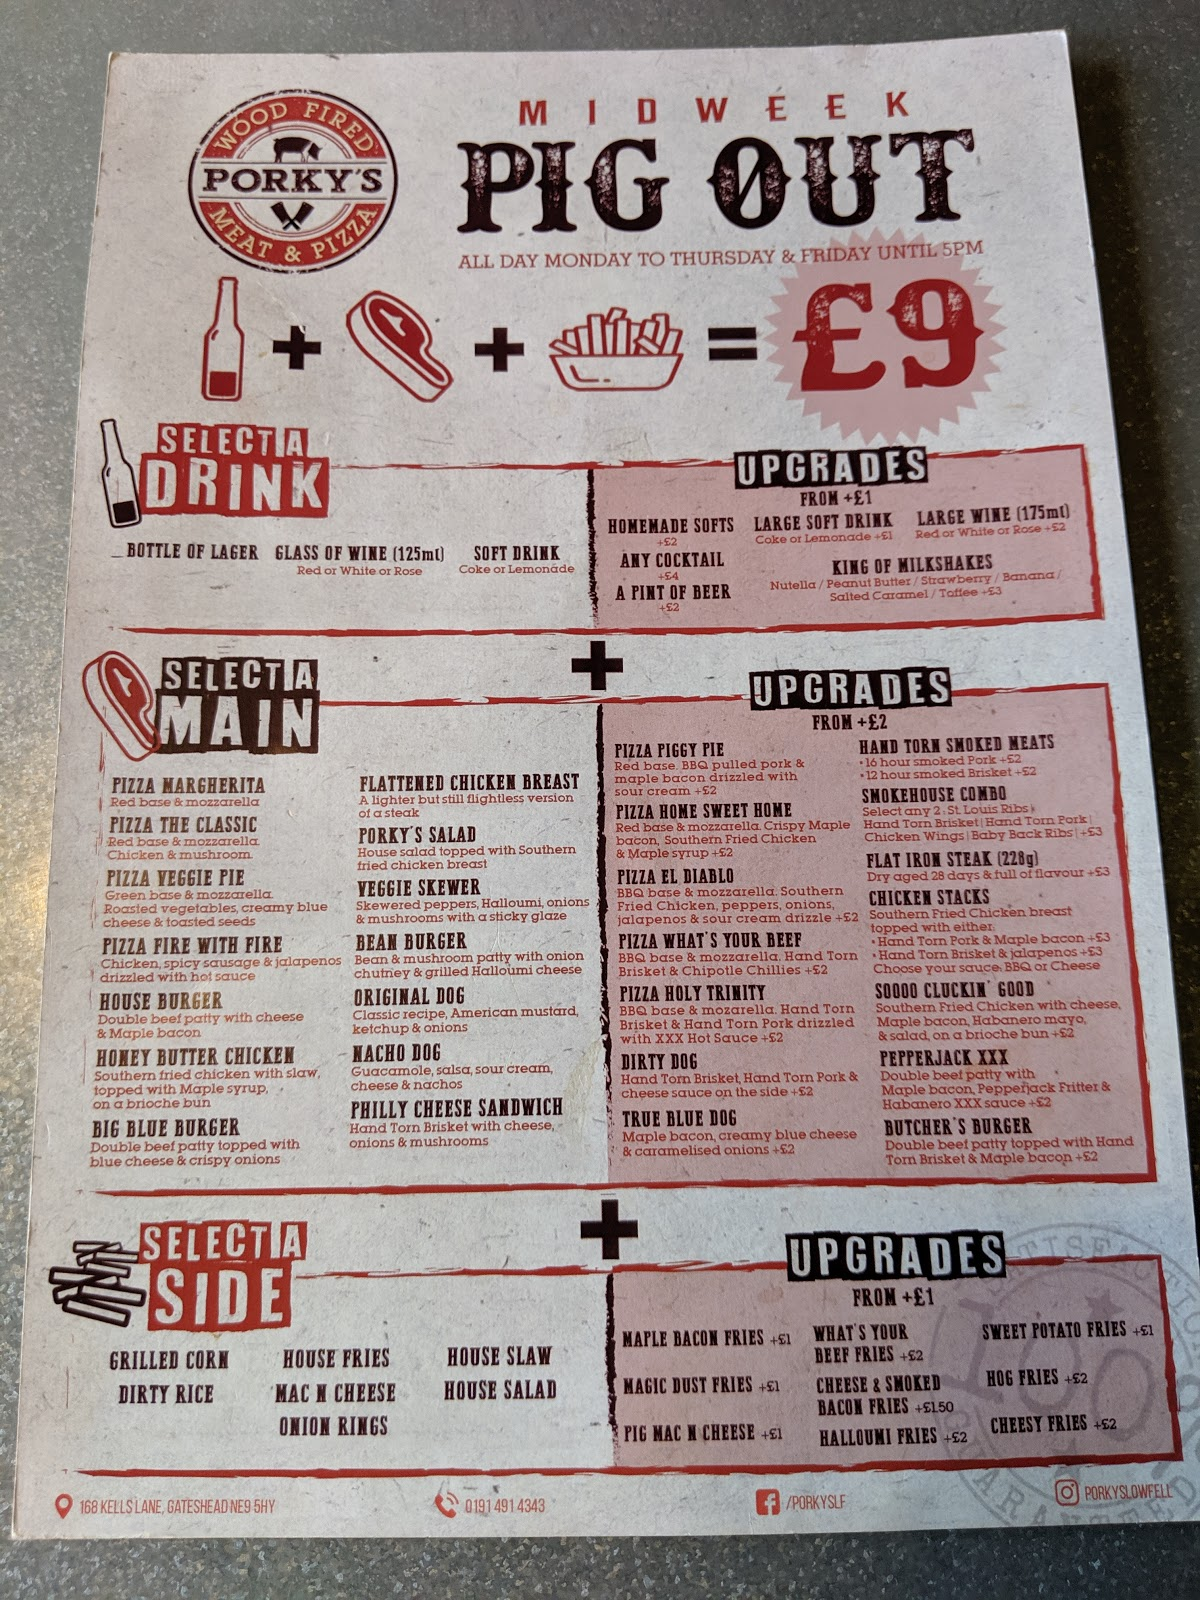 Kids Eat Free at Porky's - A Review  - pig out midweek deal menu